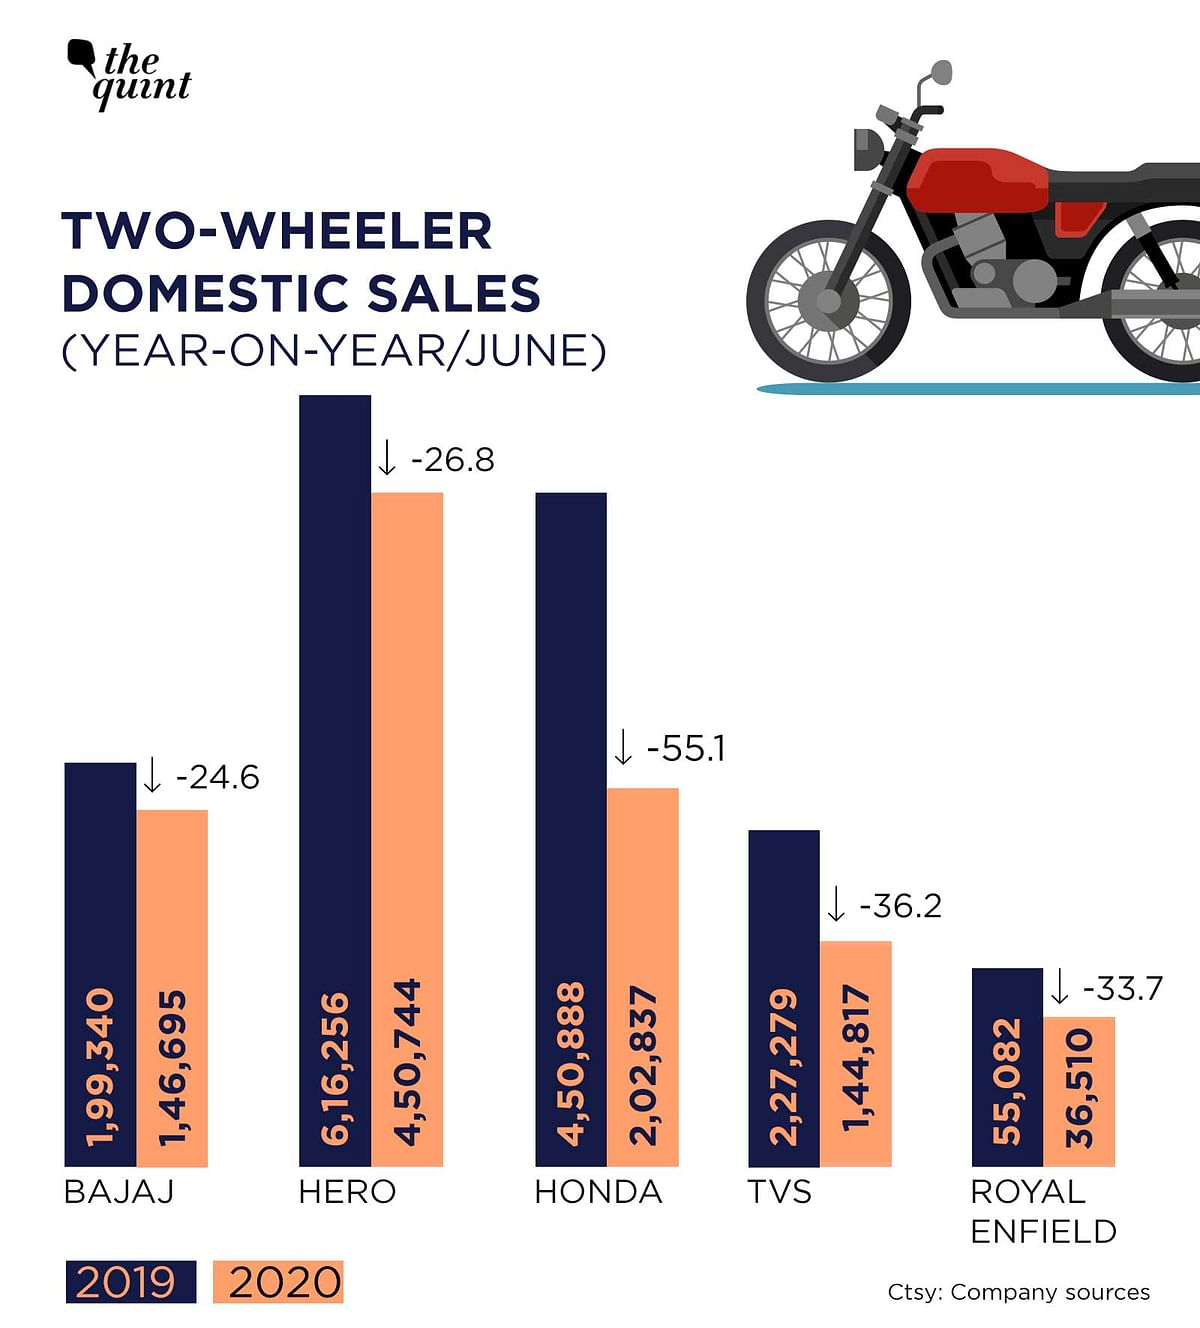 Here's how each two-wheeler manufacturer performed in June compared to last year.